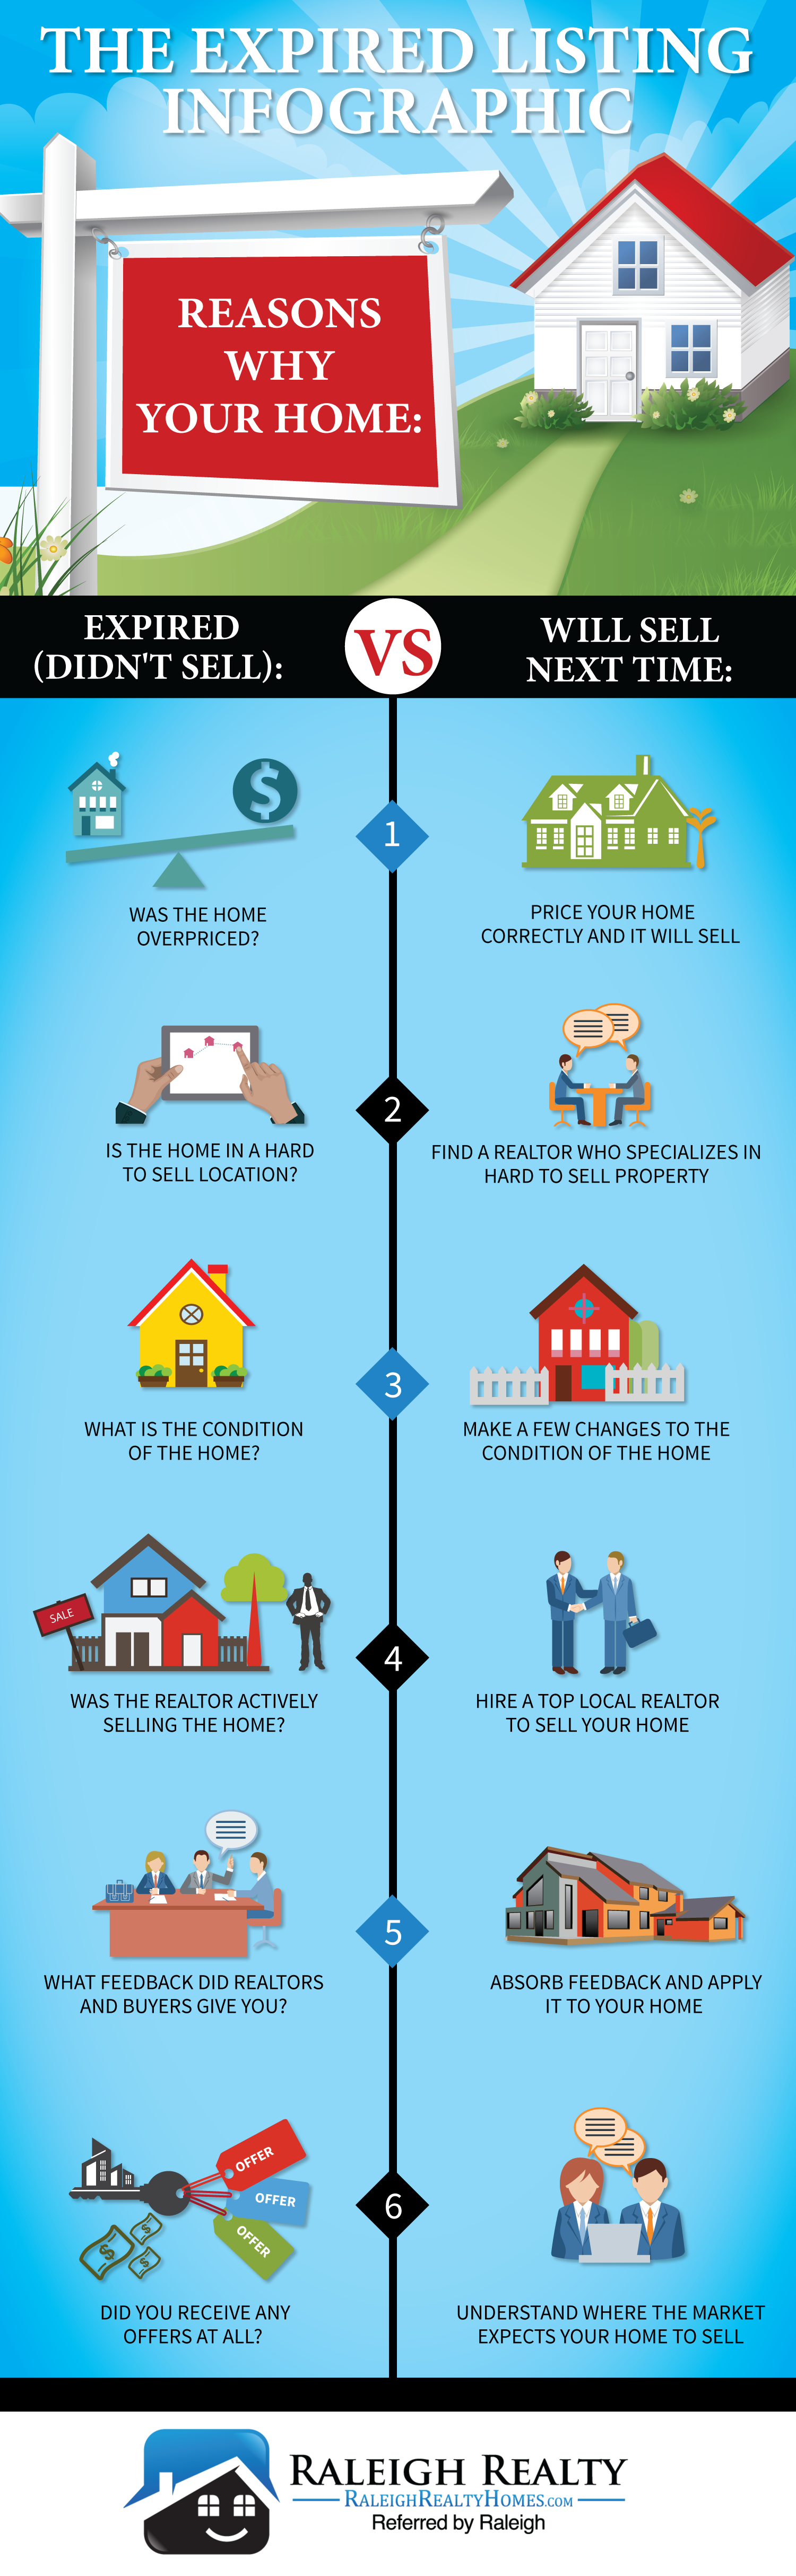 Expired Listing Infographic | Reasons why my home didn't sell